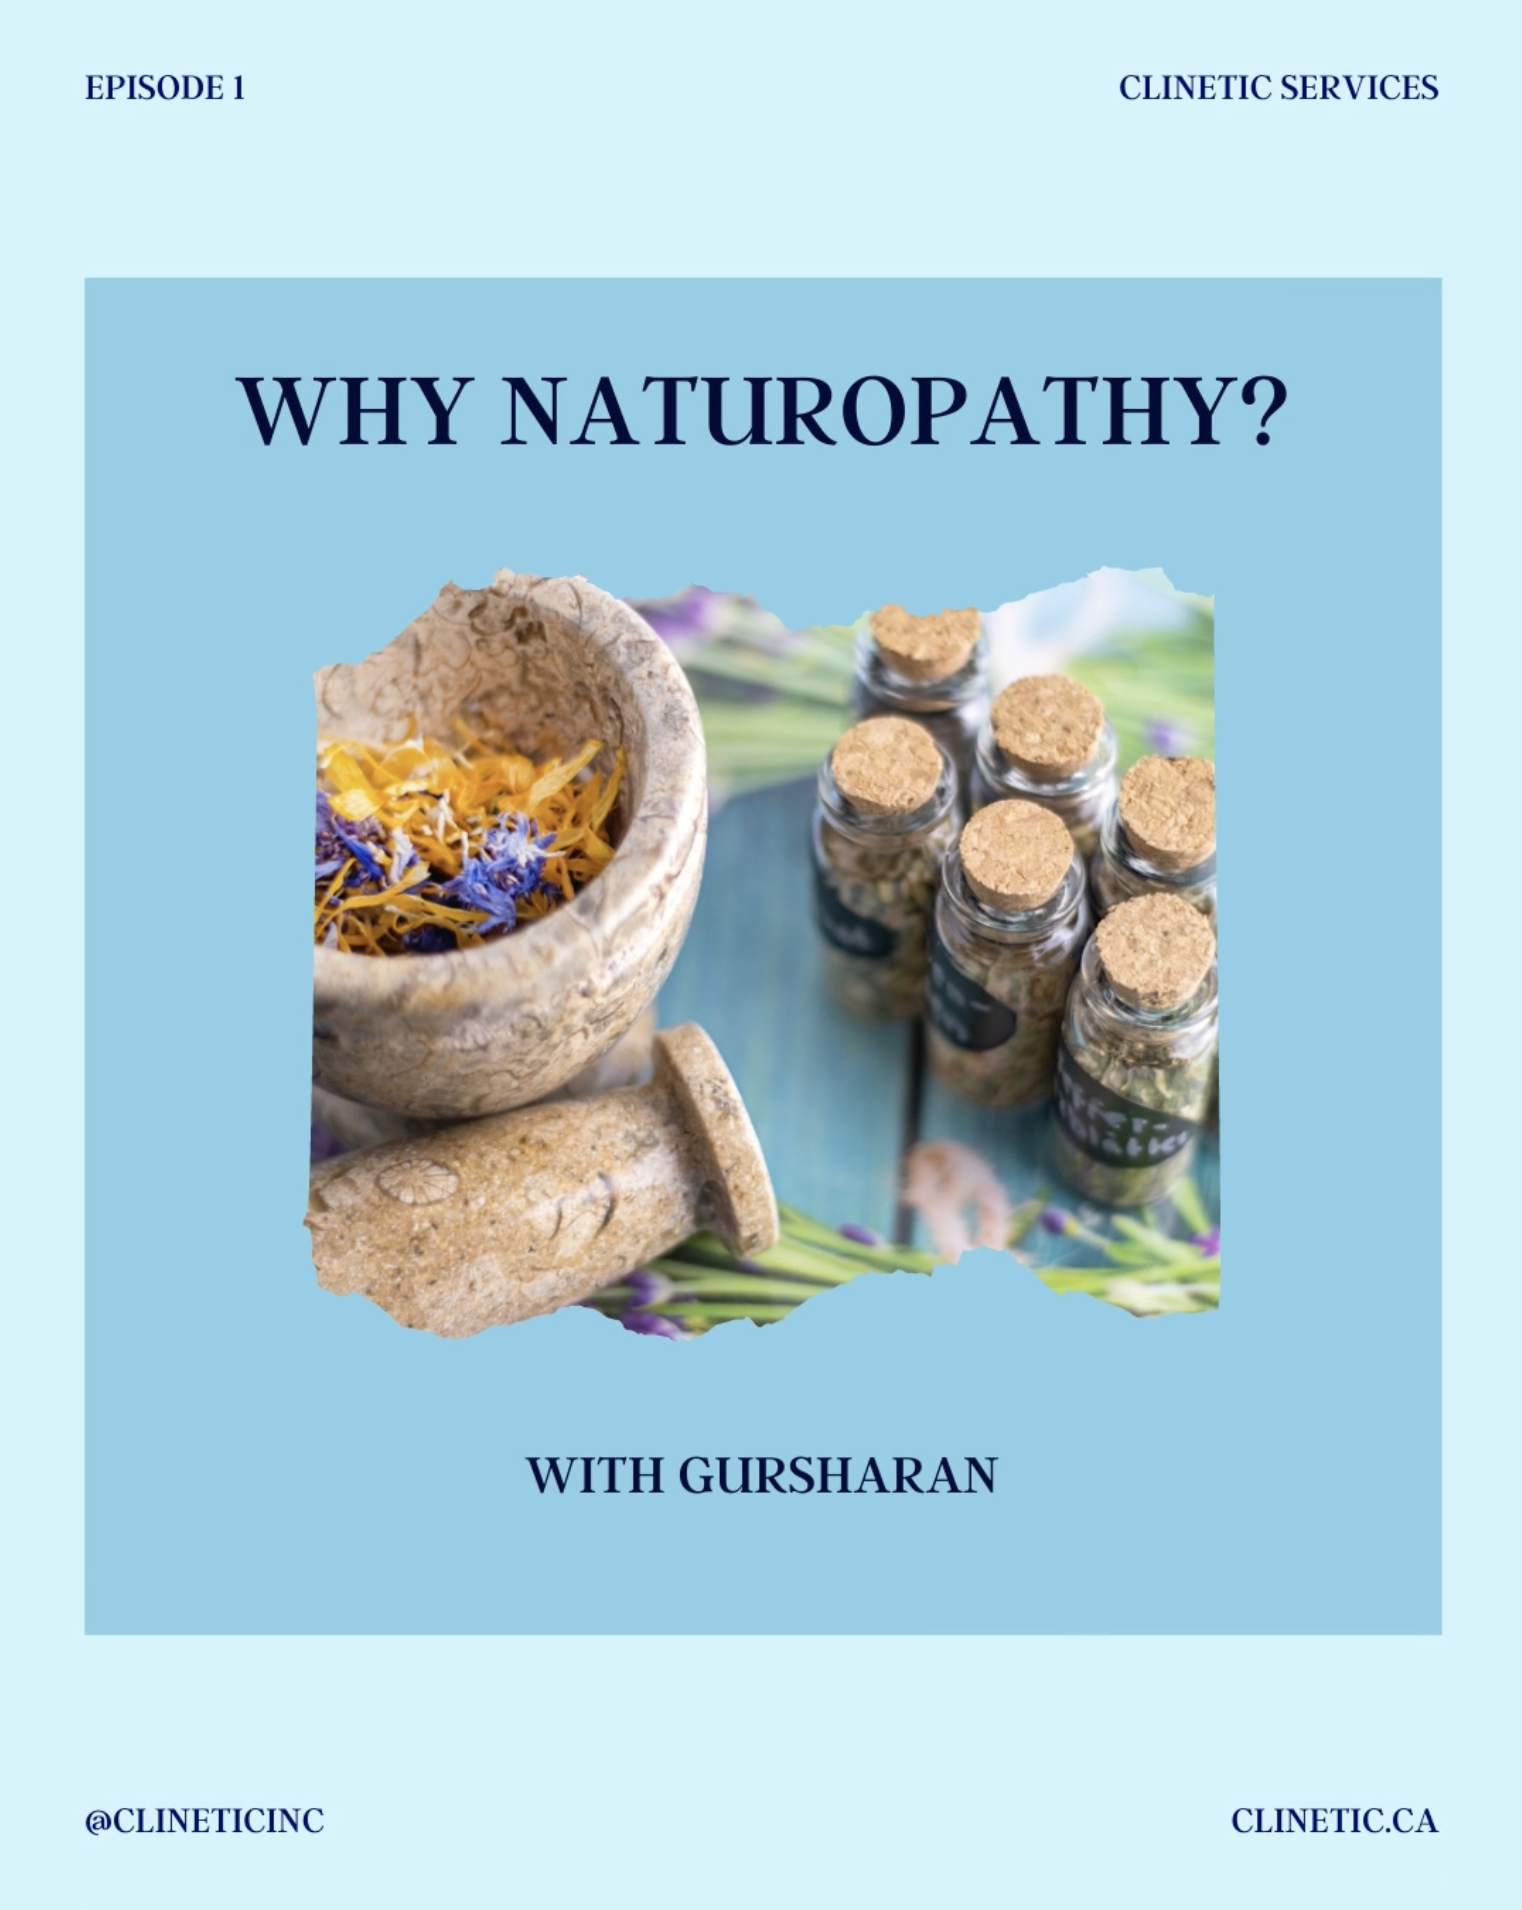 Why Naturopathy?